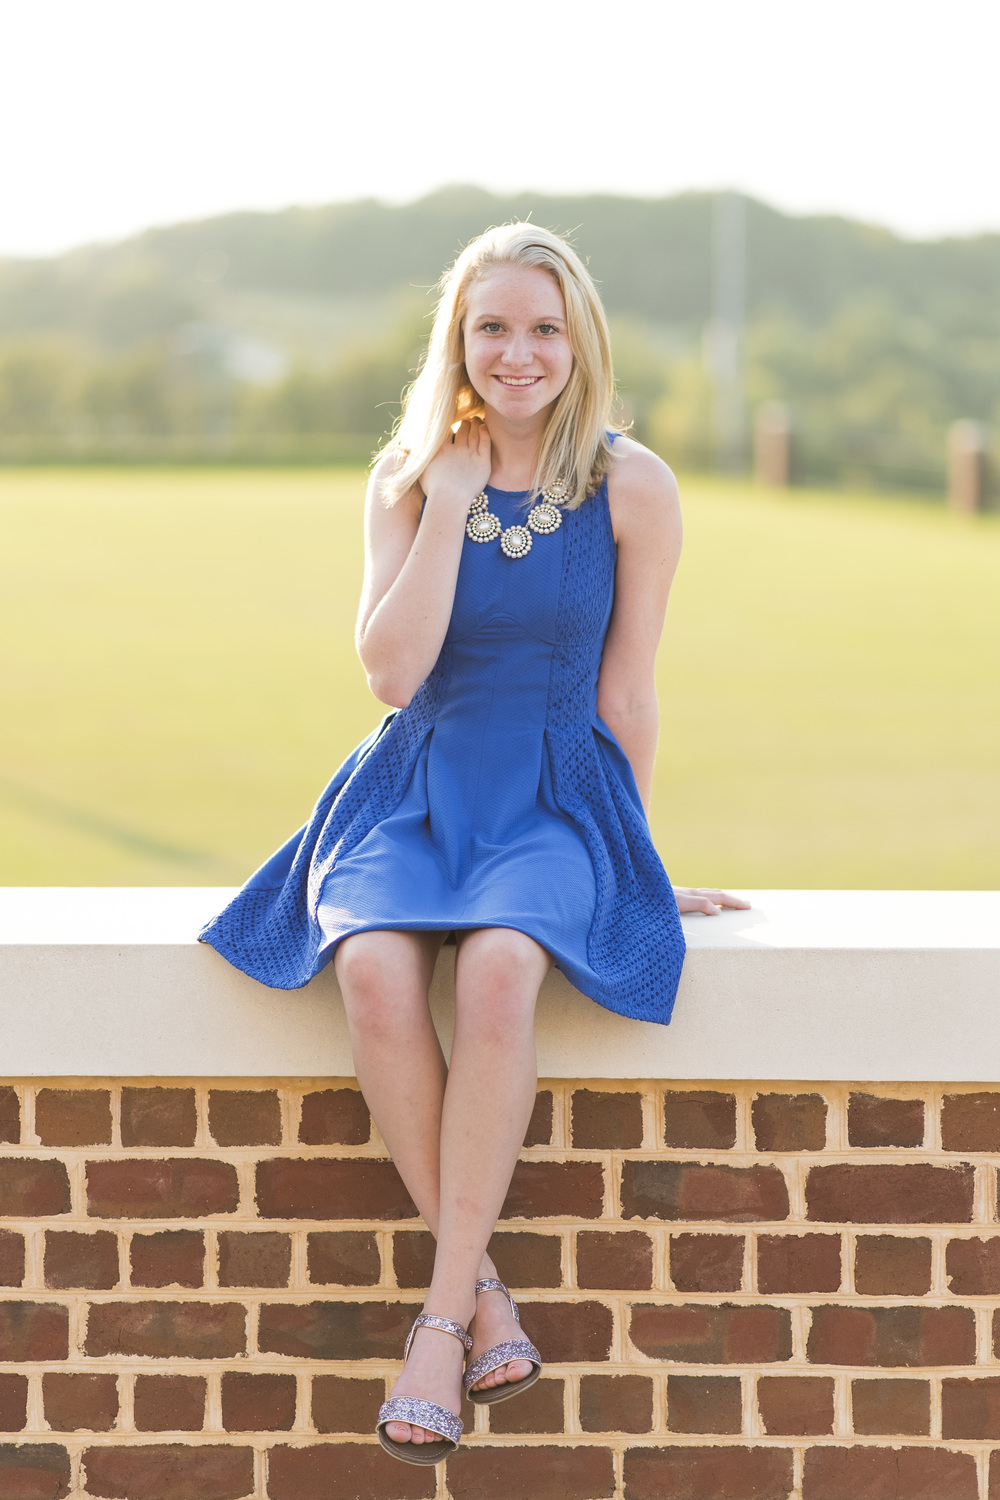 Senior_Session_Class_2016_cheerleading_VA_photos20150831_0571.jpg